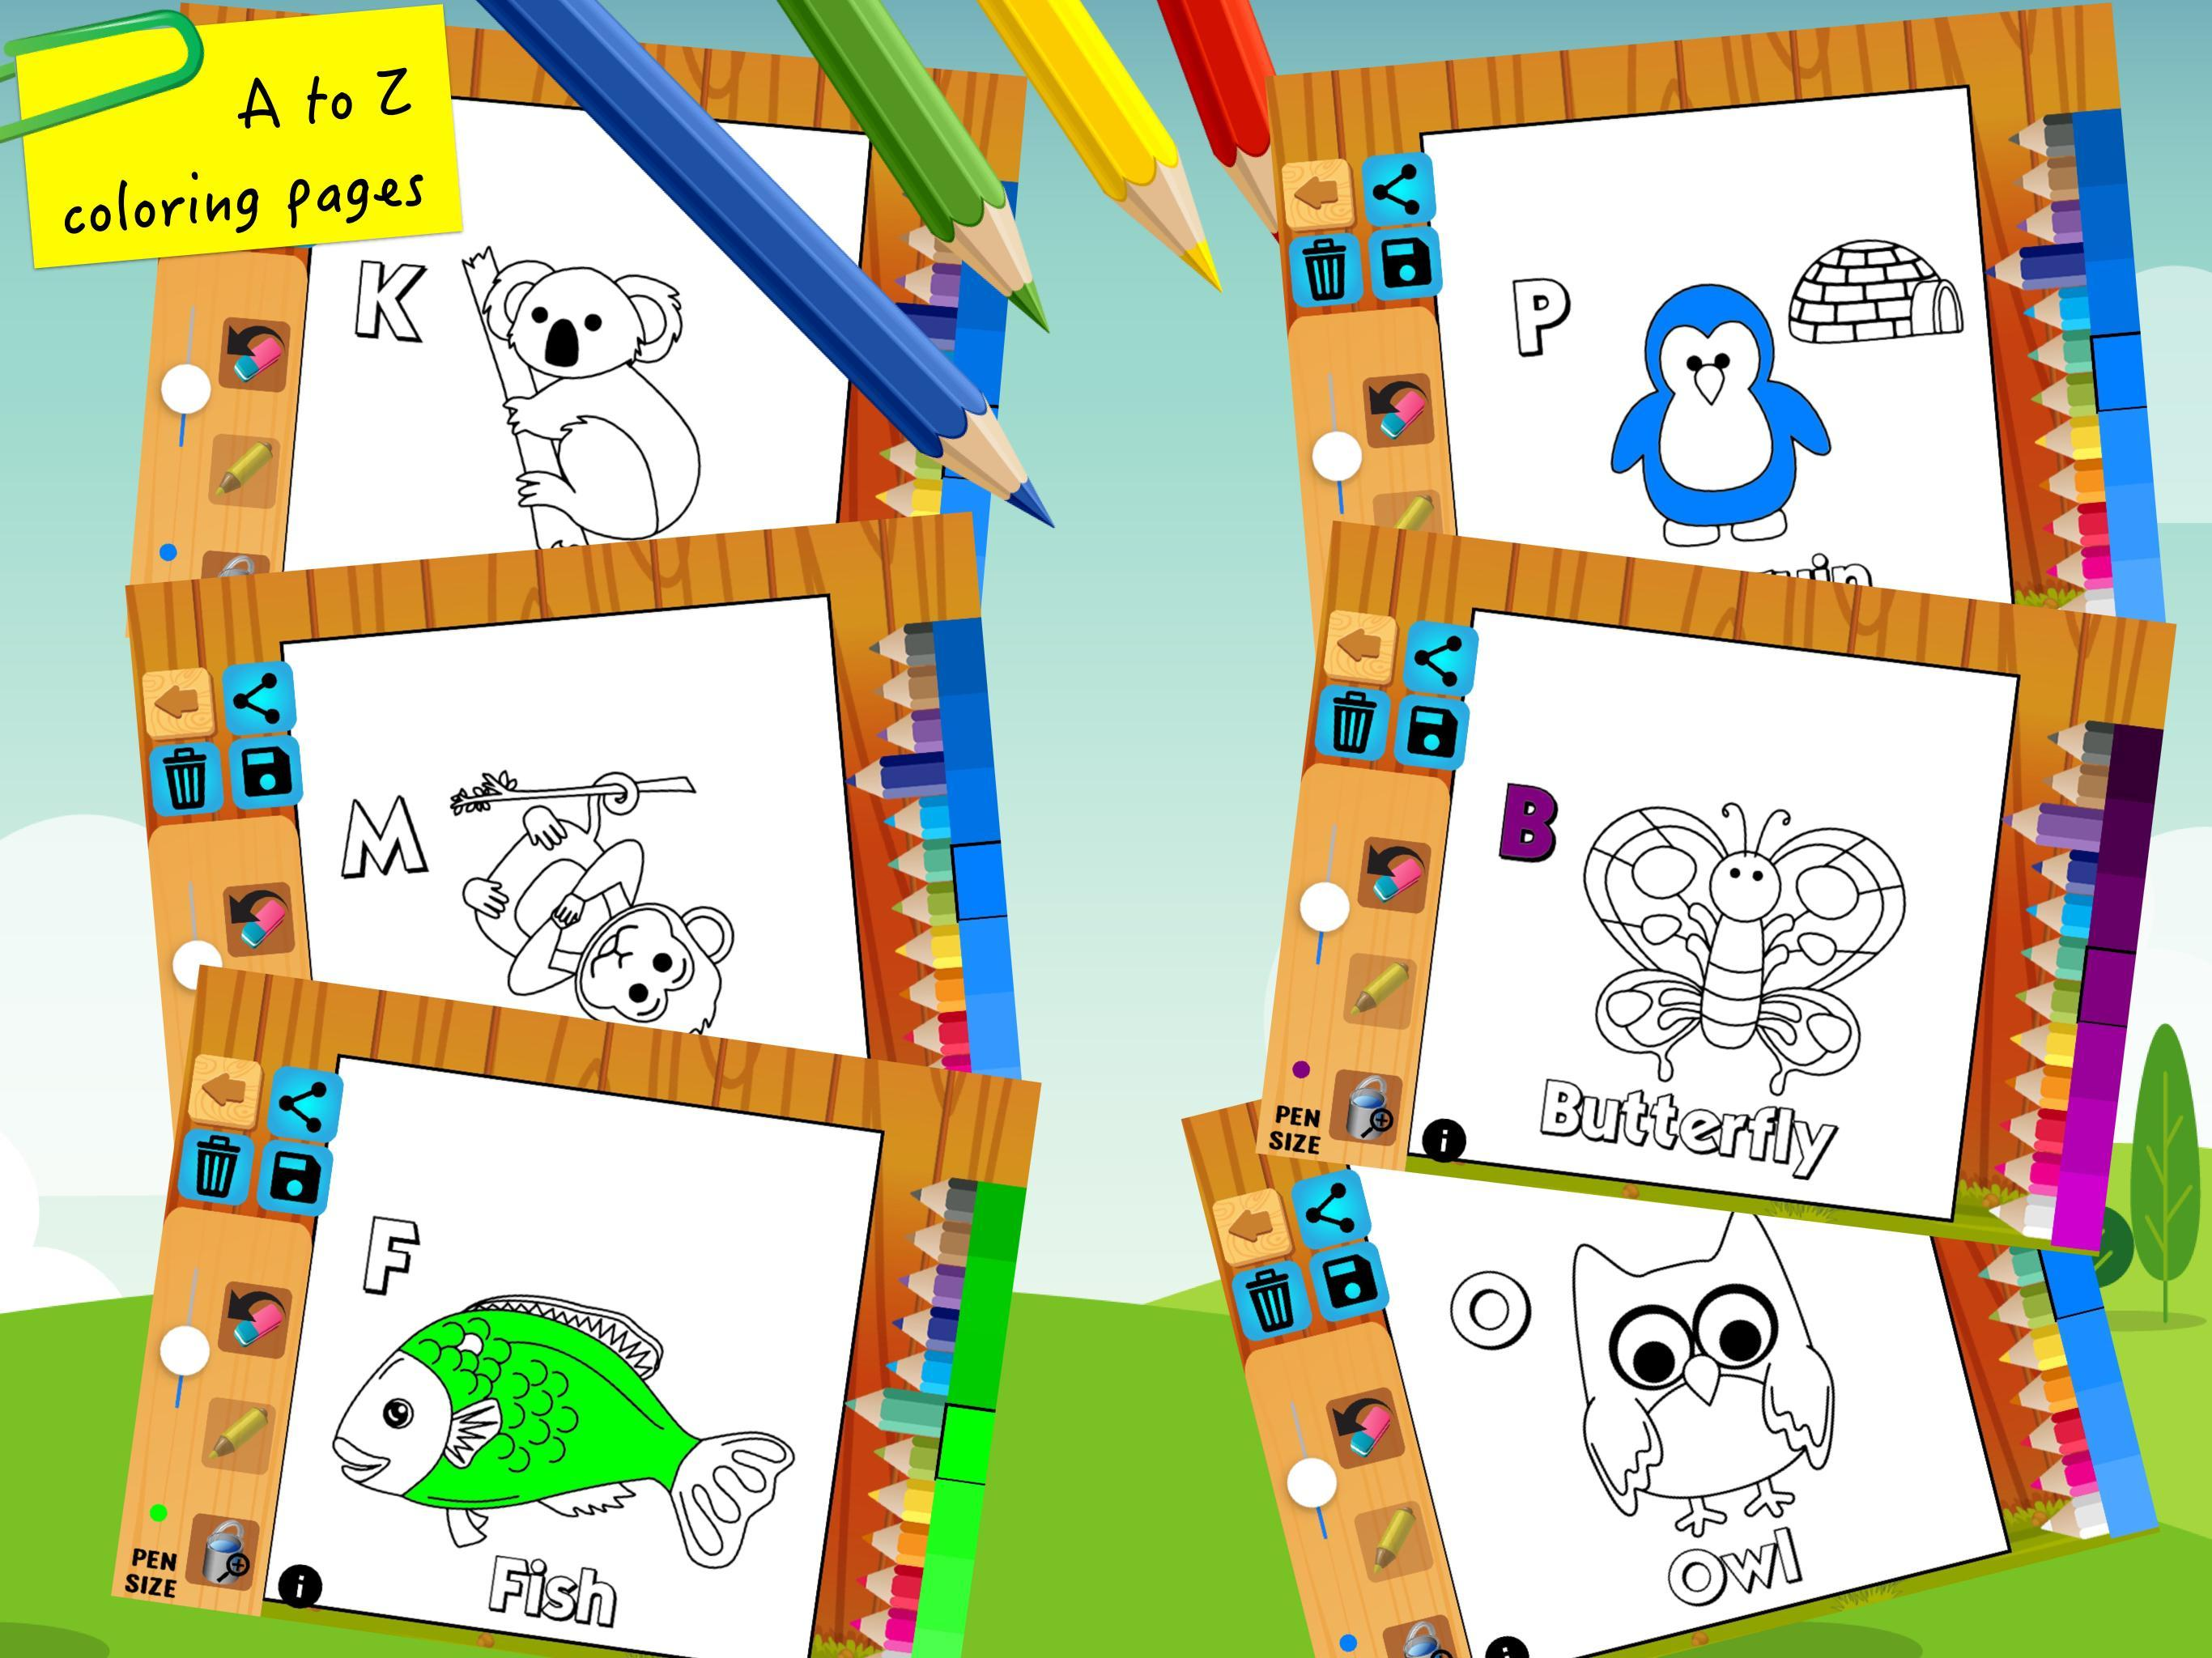 Abc Coloring Pages Painting For Kids Learning For Android Apk Download